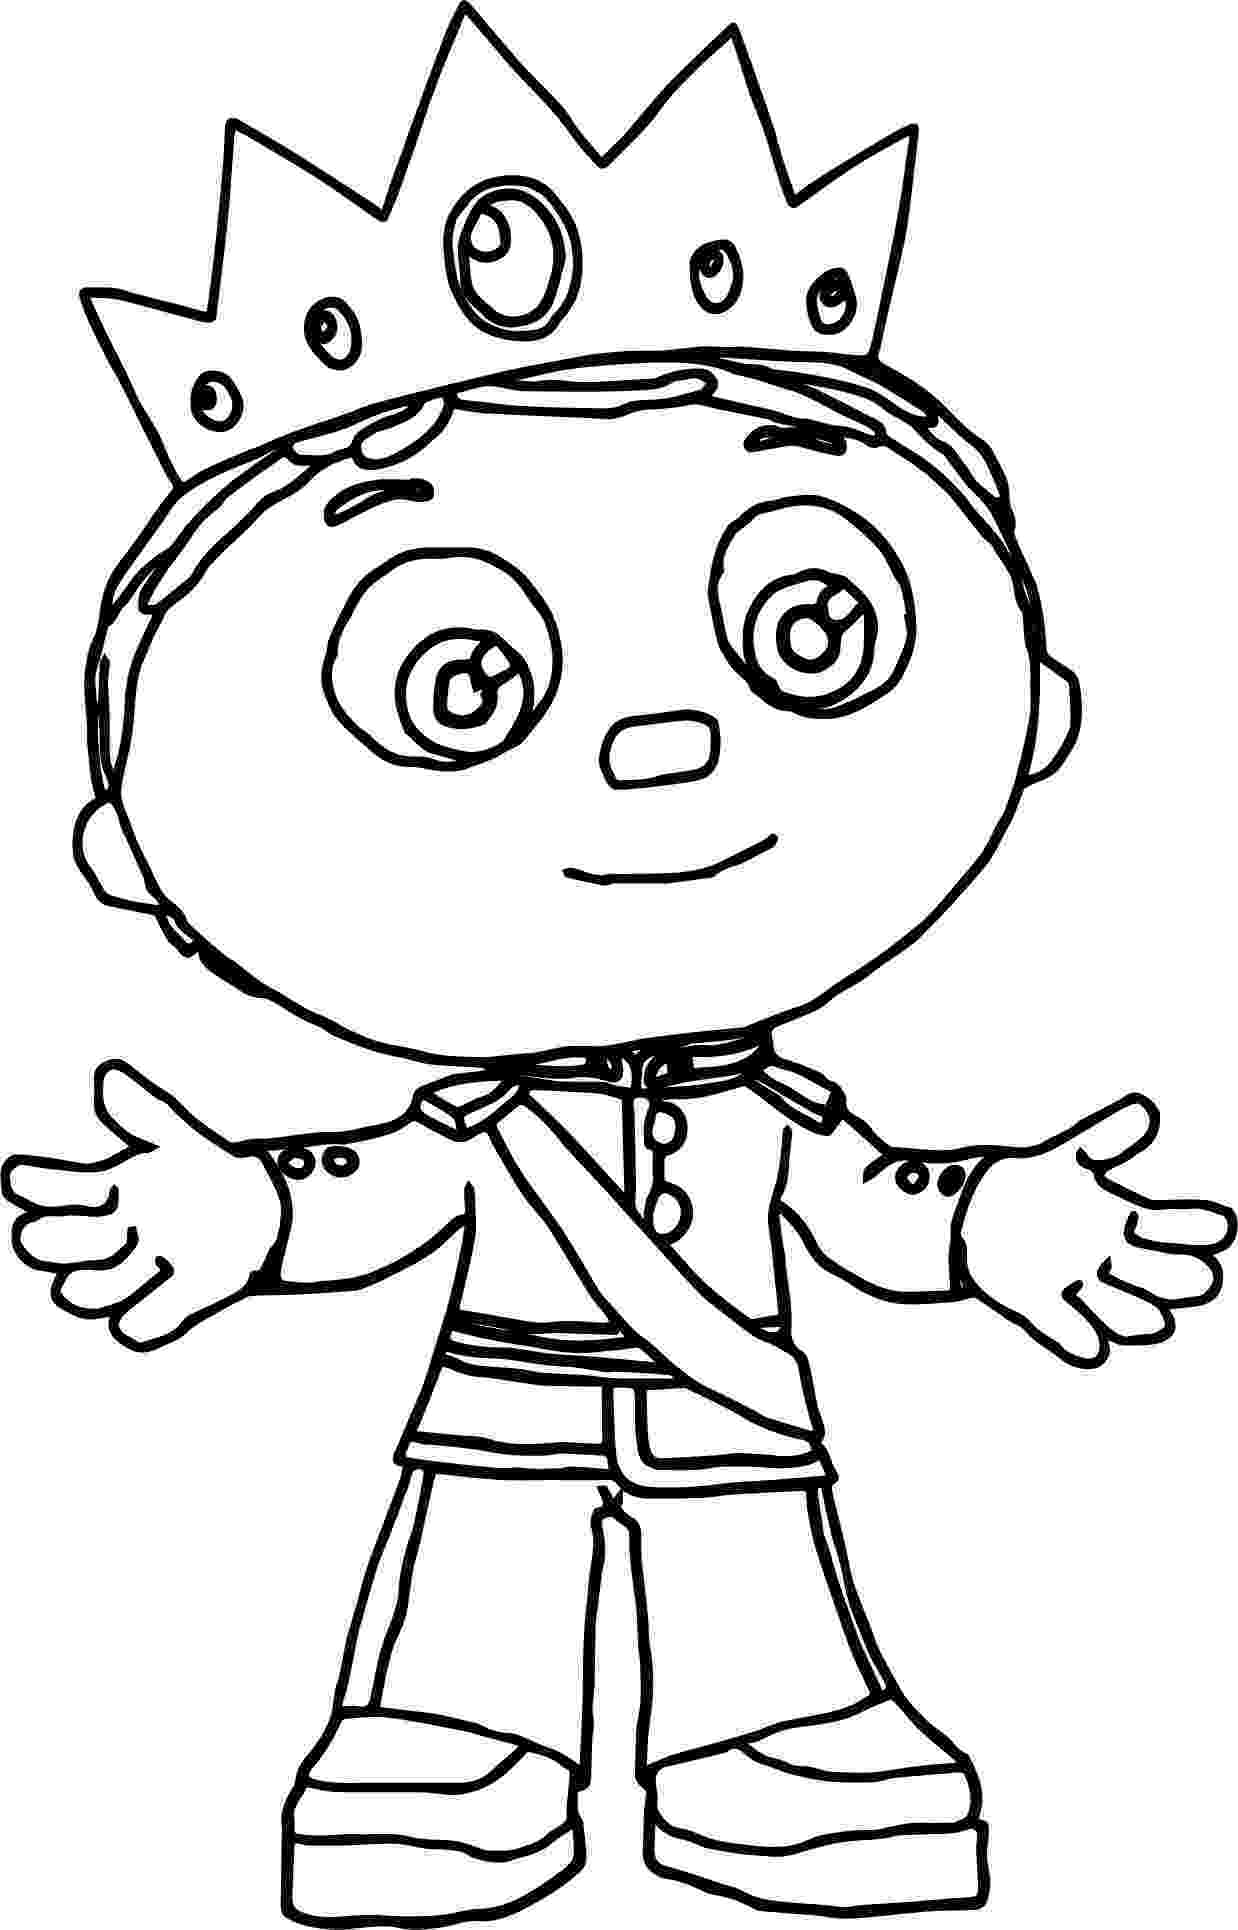 free coloring pages for children super why coloring pages best coloring pages for kids pages for coloring free children